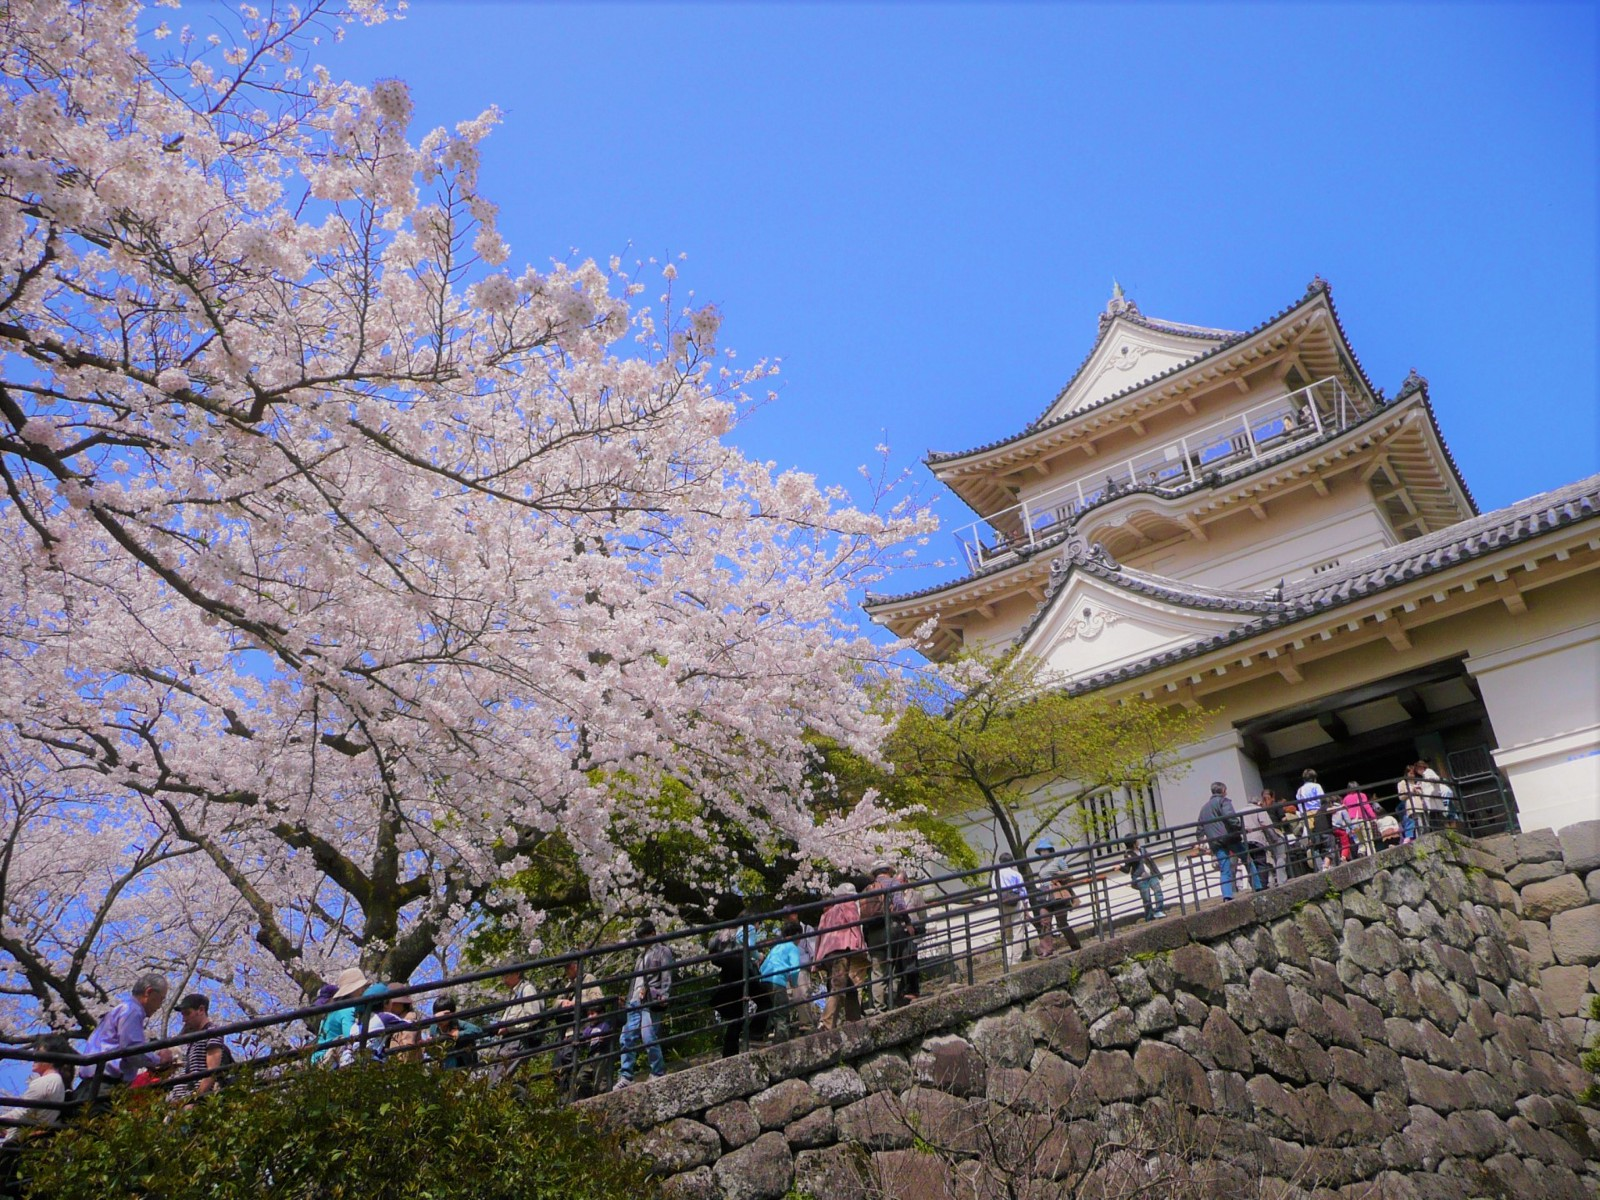 One Day Trips from Tokyo in Spring: Best Cherry Blossom Spots near Tokyo 2020